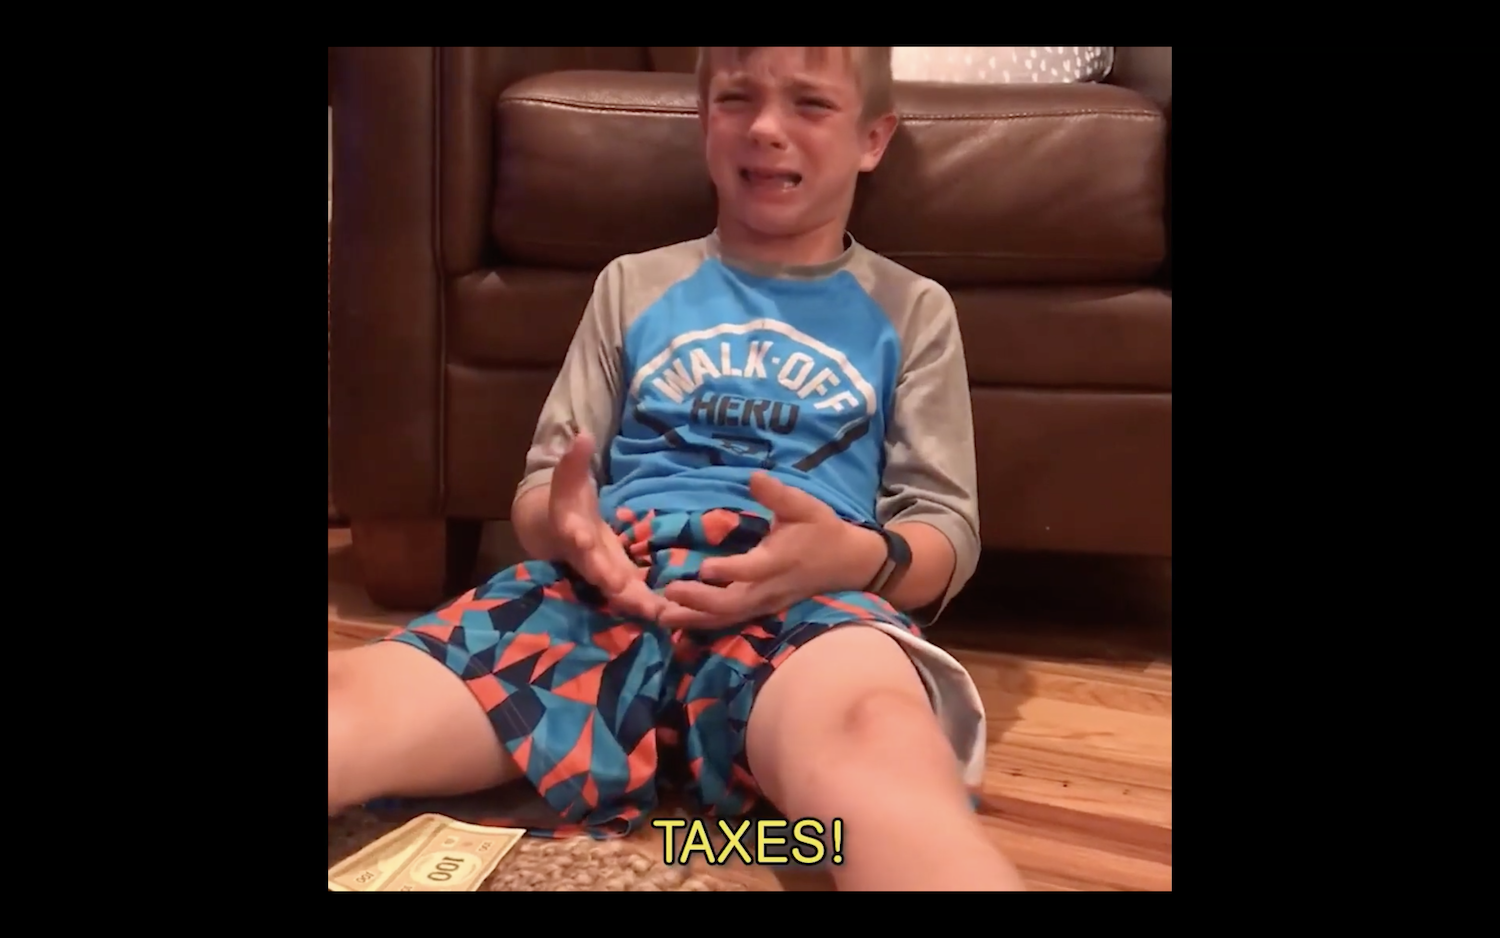 A crying kid because of the taxes in Monopoly game